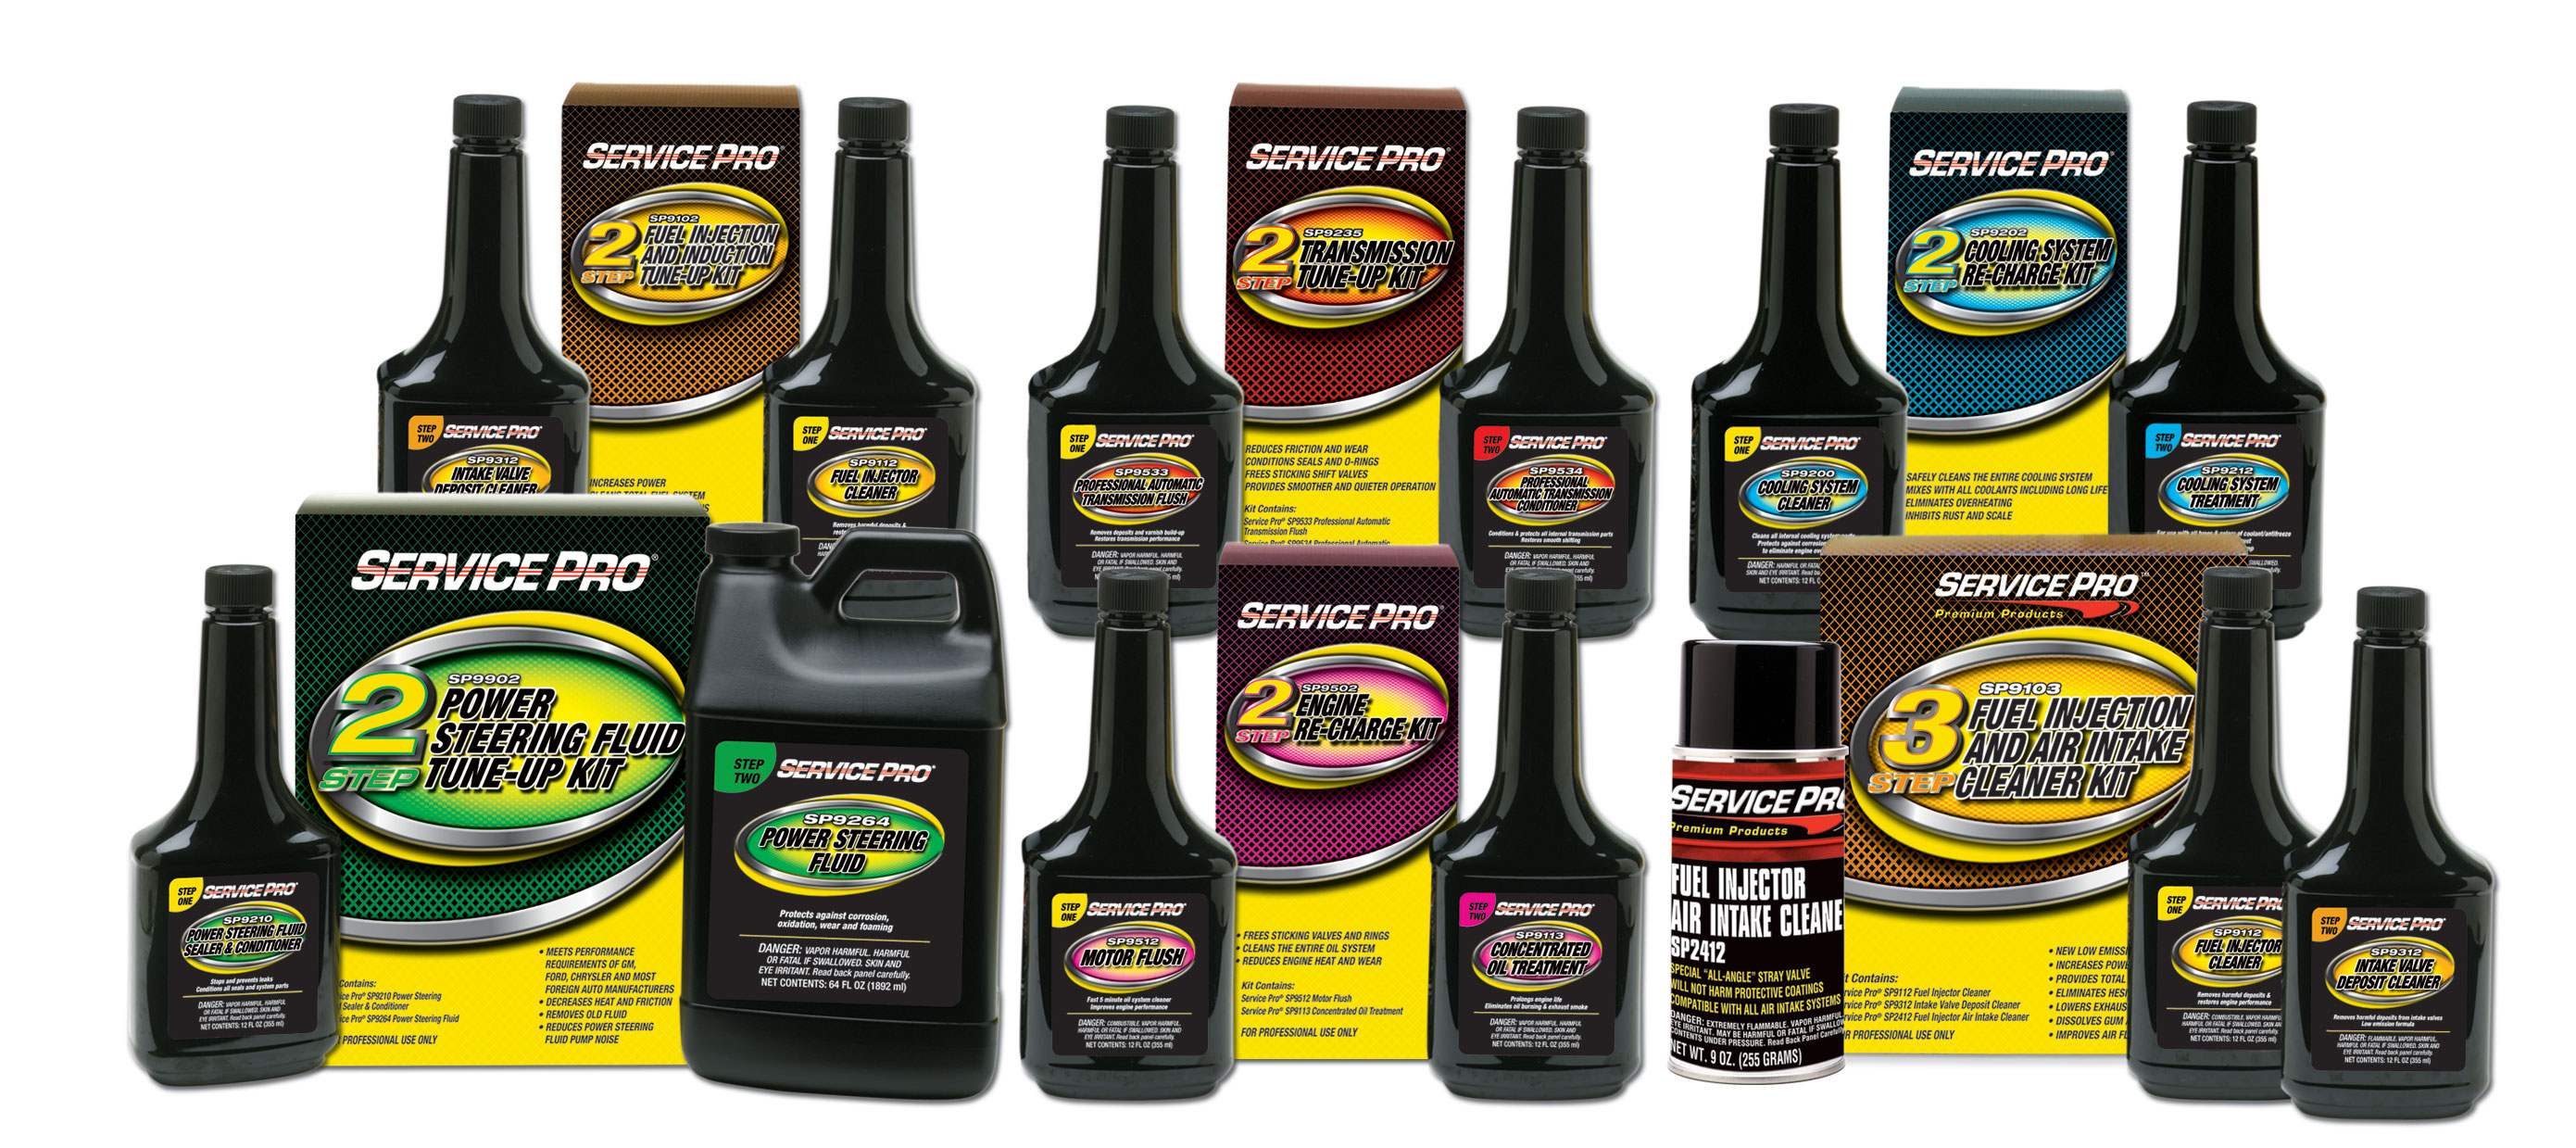 PROFESSIONAL CAR CARE SYSTEMS